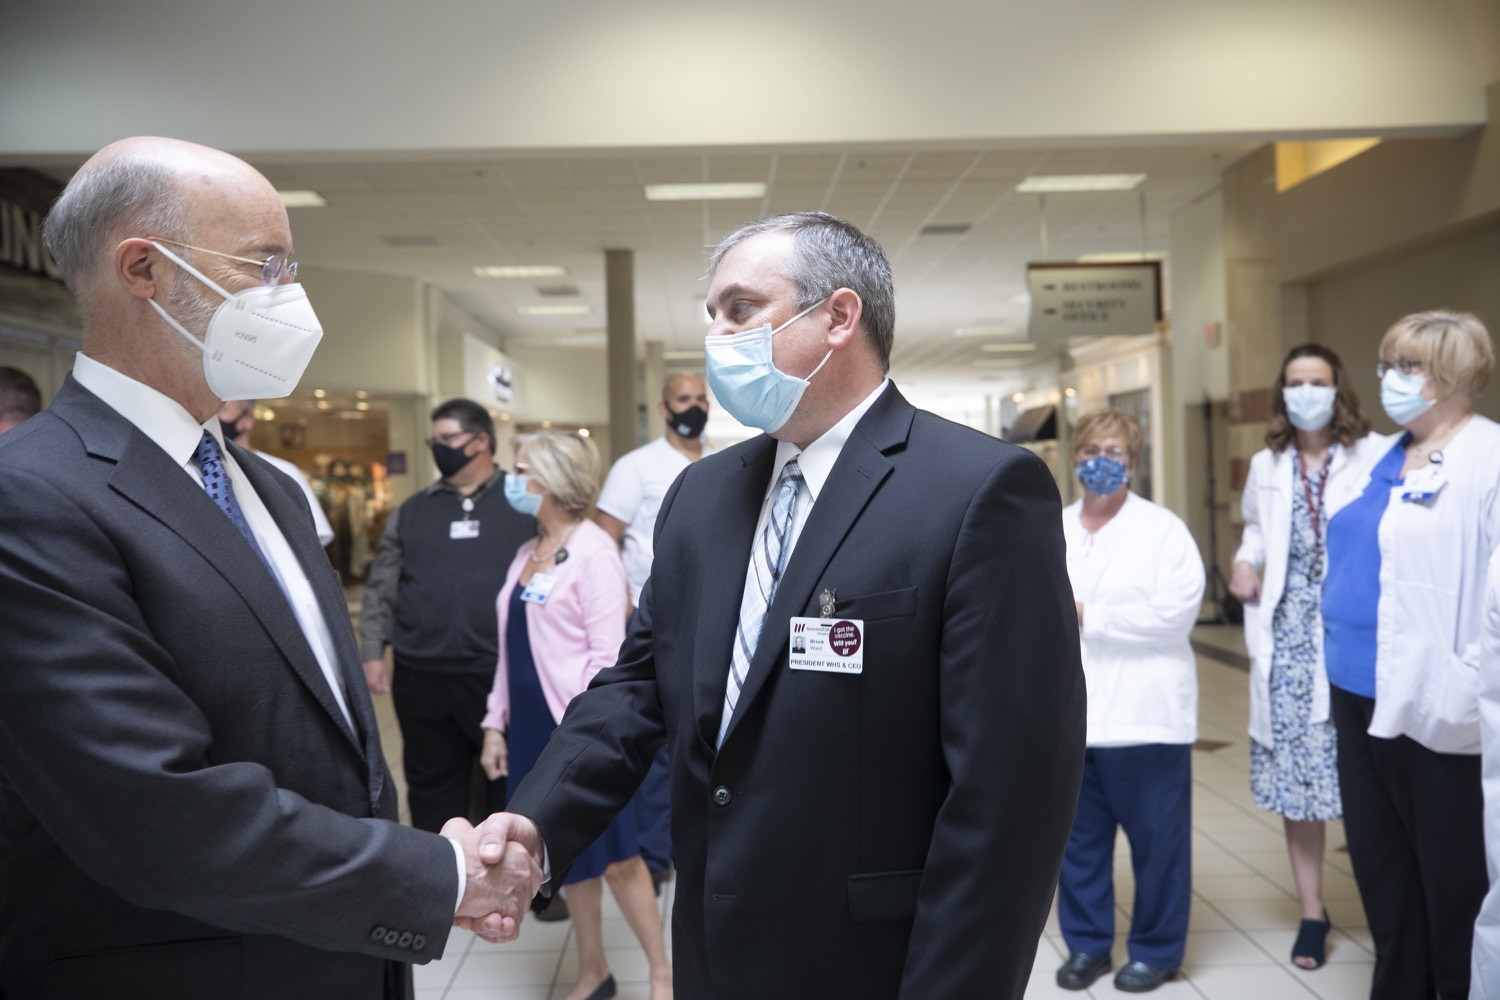 "<a href=""https://filesource.wostreaming.net/commonwealthofpa/photo/18712_gov_vaccines_dz_020.jpg"" target=""_blank"">⇣ Download Photo<br></a>Pennsylvania Governor Tom Wolf touring the vaccine facility with  Brook Ward, Washington Health System CEO .  Continuing to visit COVID-19 vaccine clinics around the state, Governor Tom Wolf toured a clinic at the Washington Crown Center in Washington County today. The clinic is one of three operated by the Washington Health System (WHS) serving rural communities in southwestern Pennsylvania.  North Franklin Township, PA  April 28, 2021"